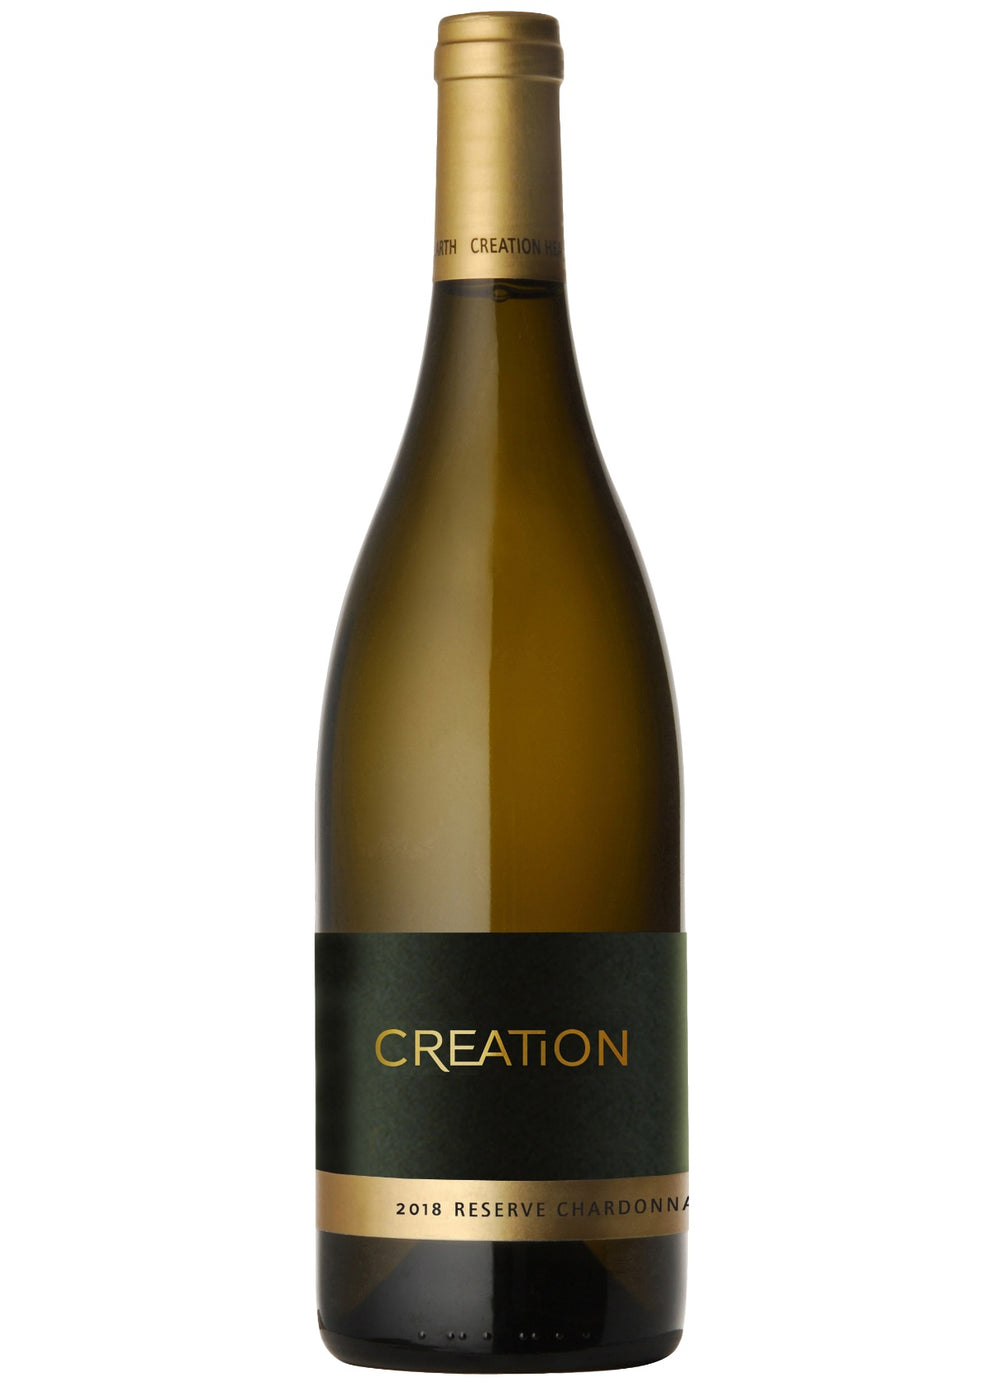 Creation - Reserve Chardonnay 2018